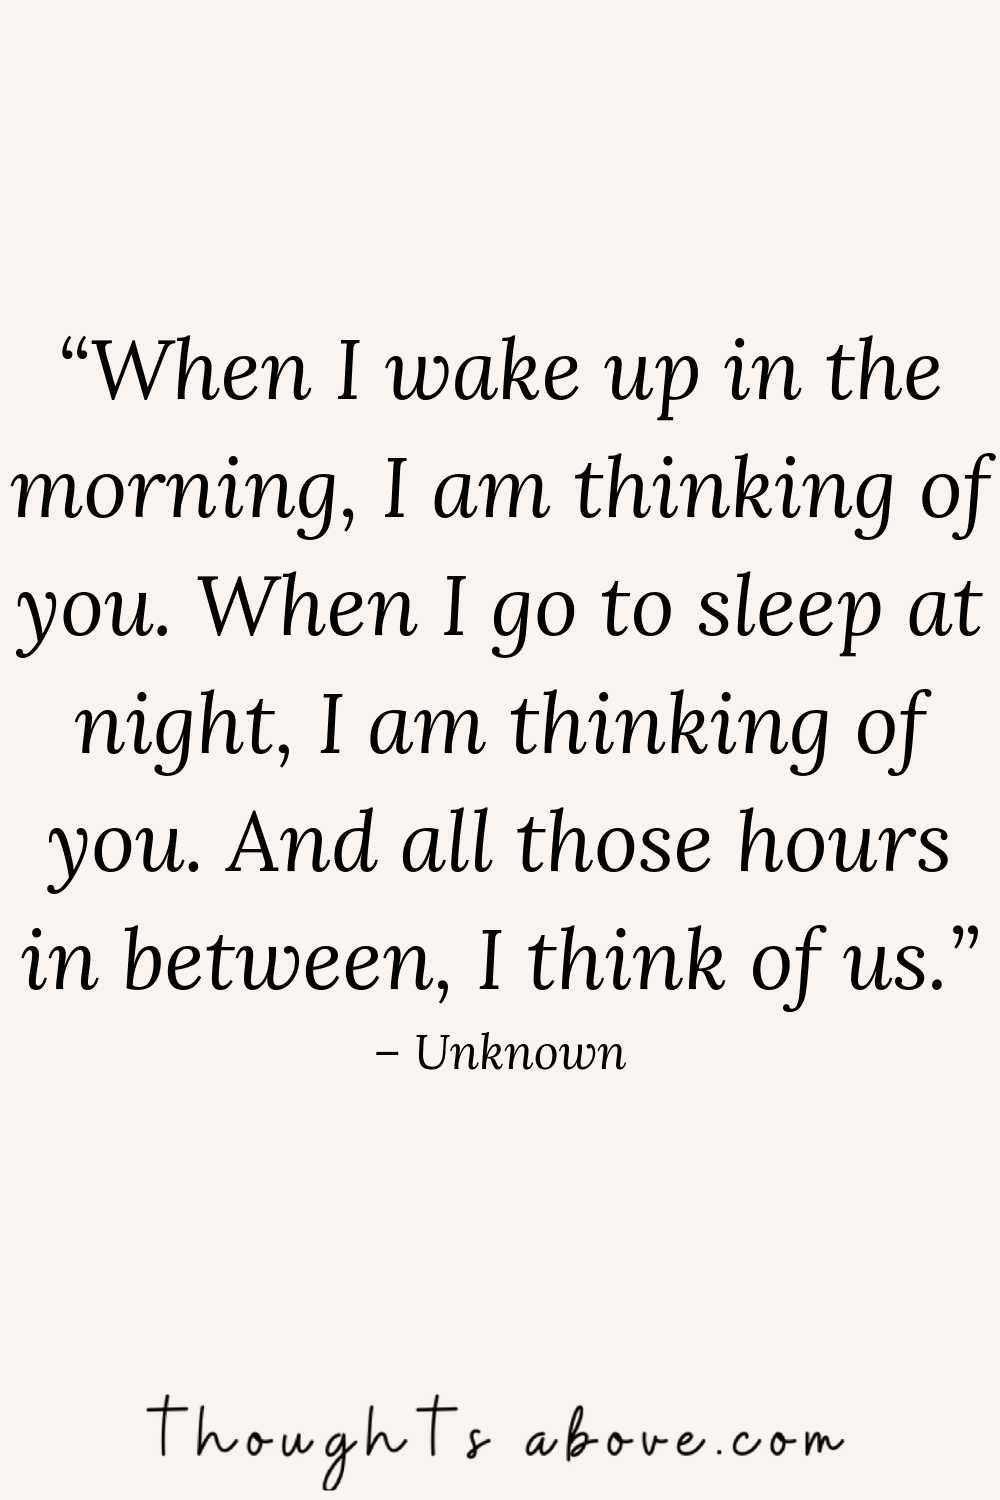 Wondering what words to say to someone you love? Here are 15 deep, cute romantic love quotes words you use either it's for him, For boyfriend, your soulmate, for her or your crush. Some are funny and madly true romantic. Missing you /In love wiht you quotes /Couples in love/relationships quotes for him /Falling in love #quotes #love #boyfreind #mylove #cute #romantic